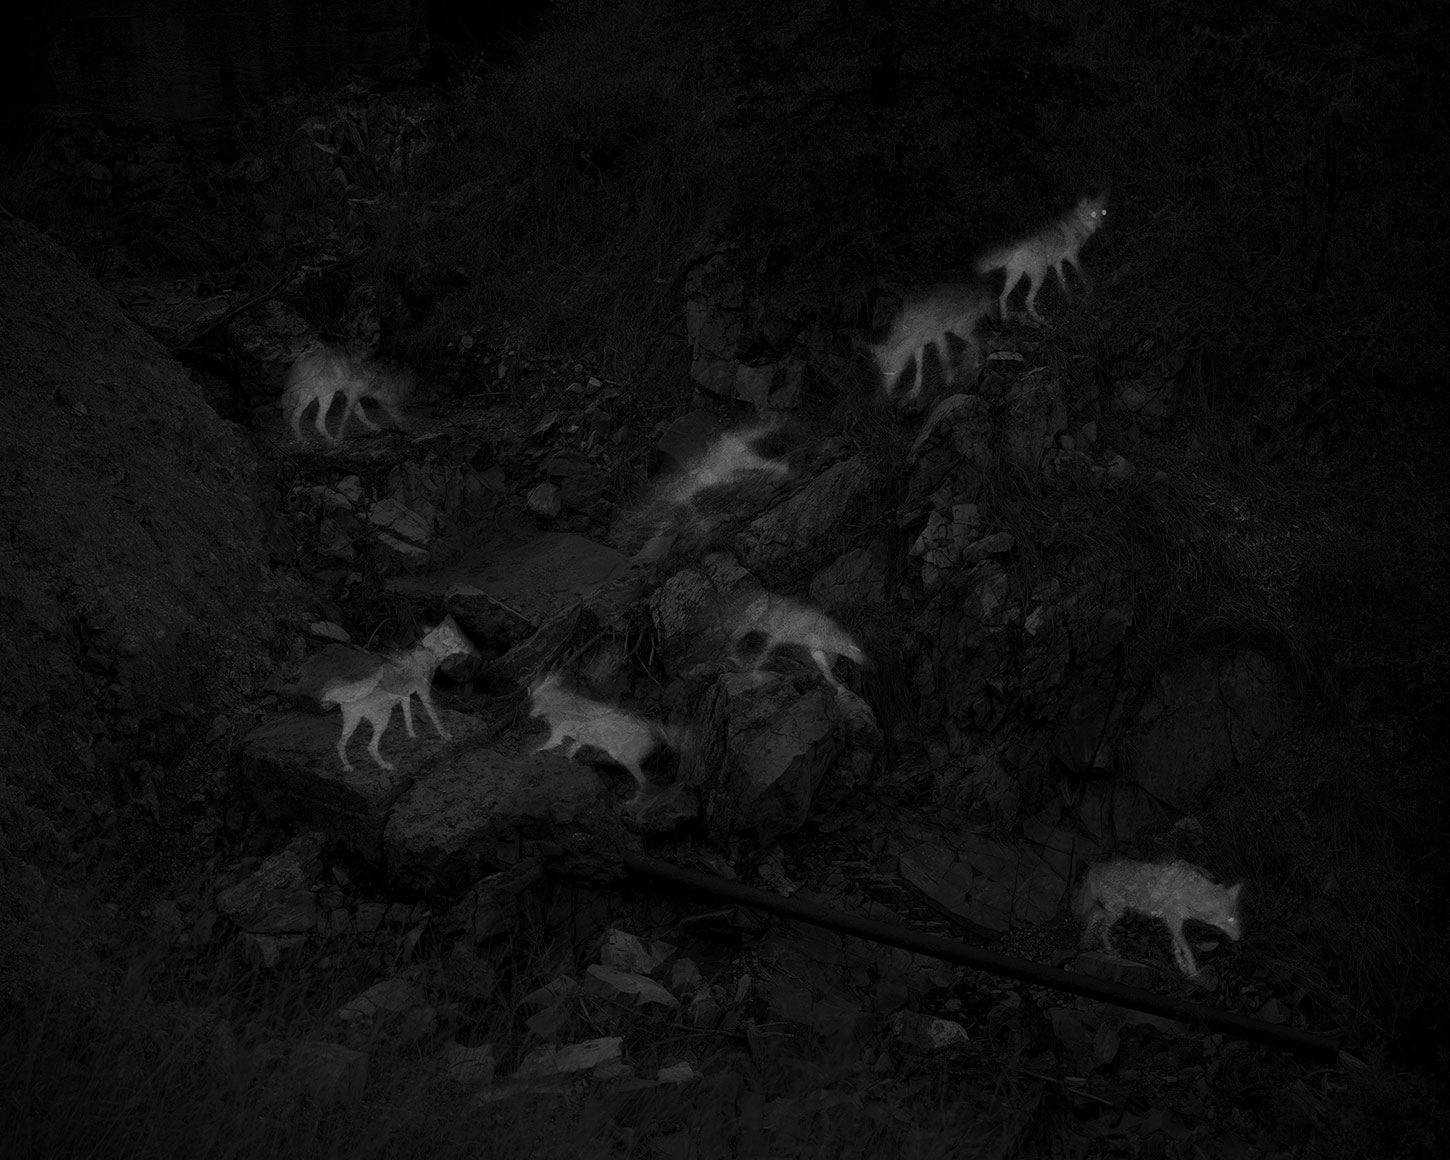 8 Captures of 2 Coyotes, by Alex Turner